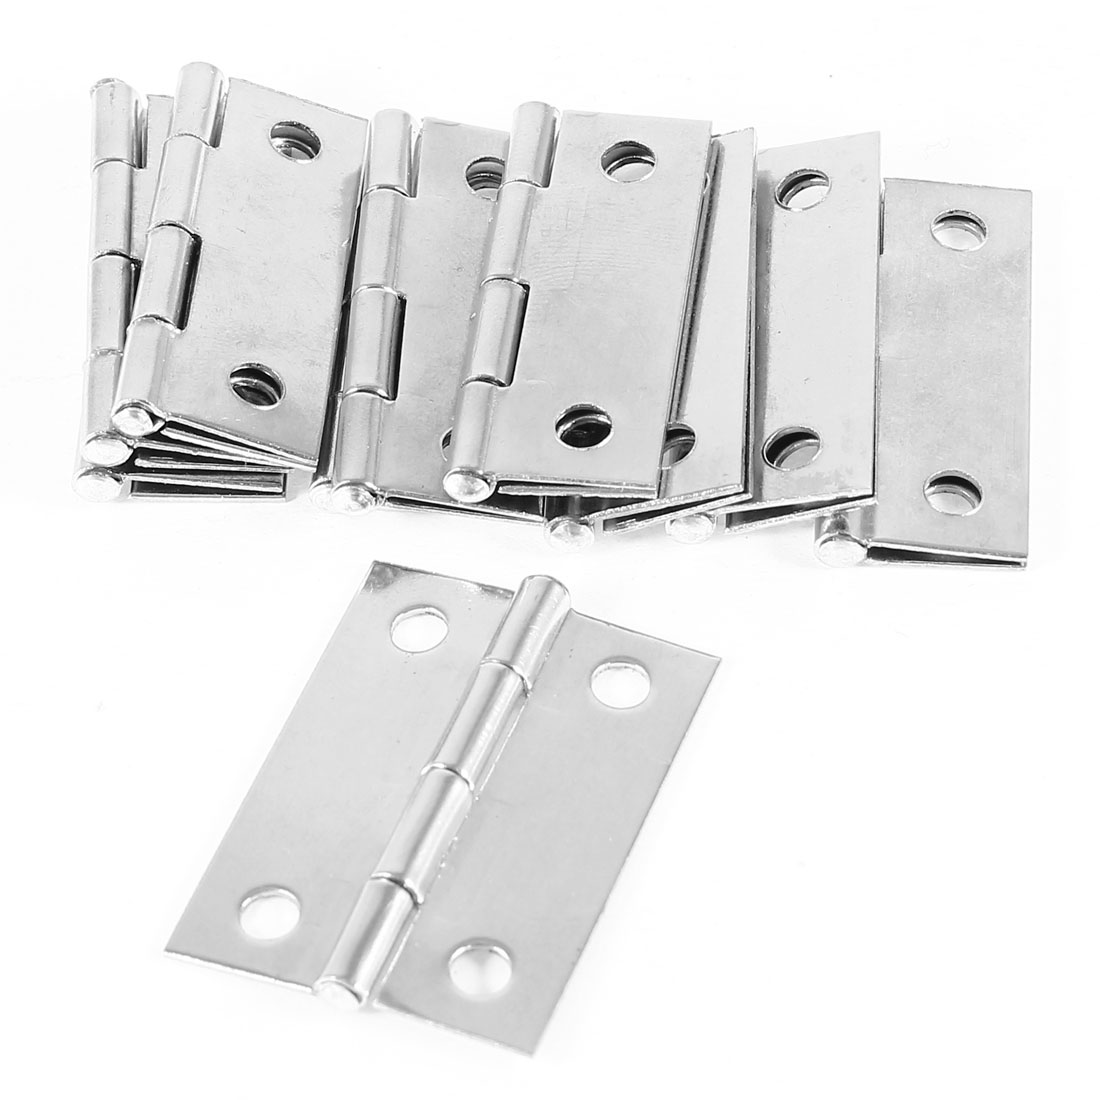 """10 Pcs/lot Cabinet Drawer Door Stainless Steel Butt Hinges 1.5"""" Length(China (Mainland))"""